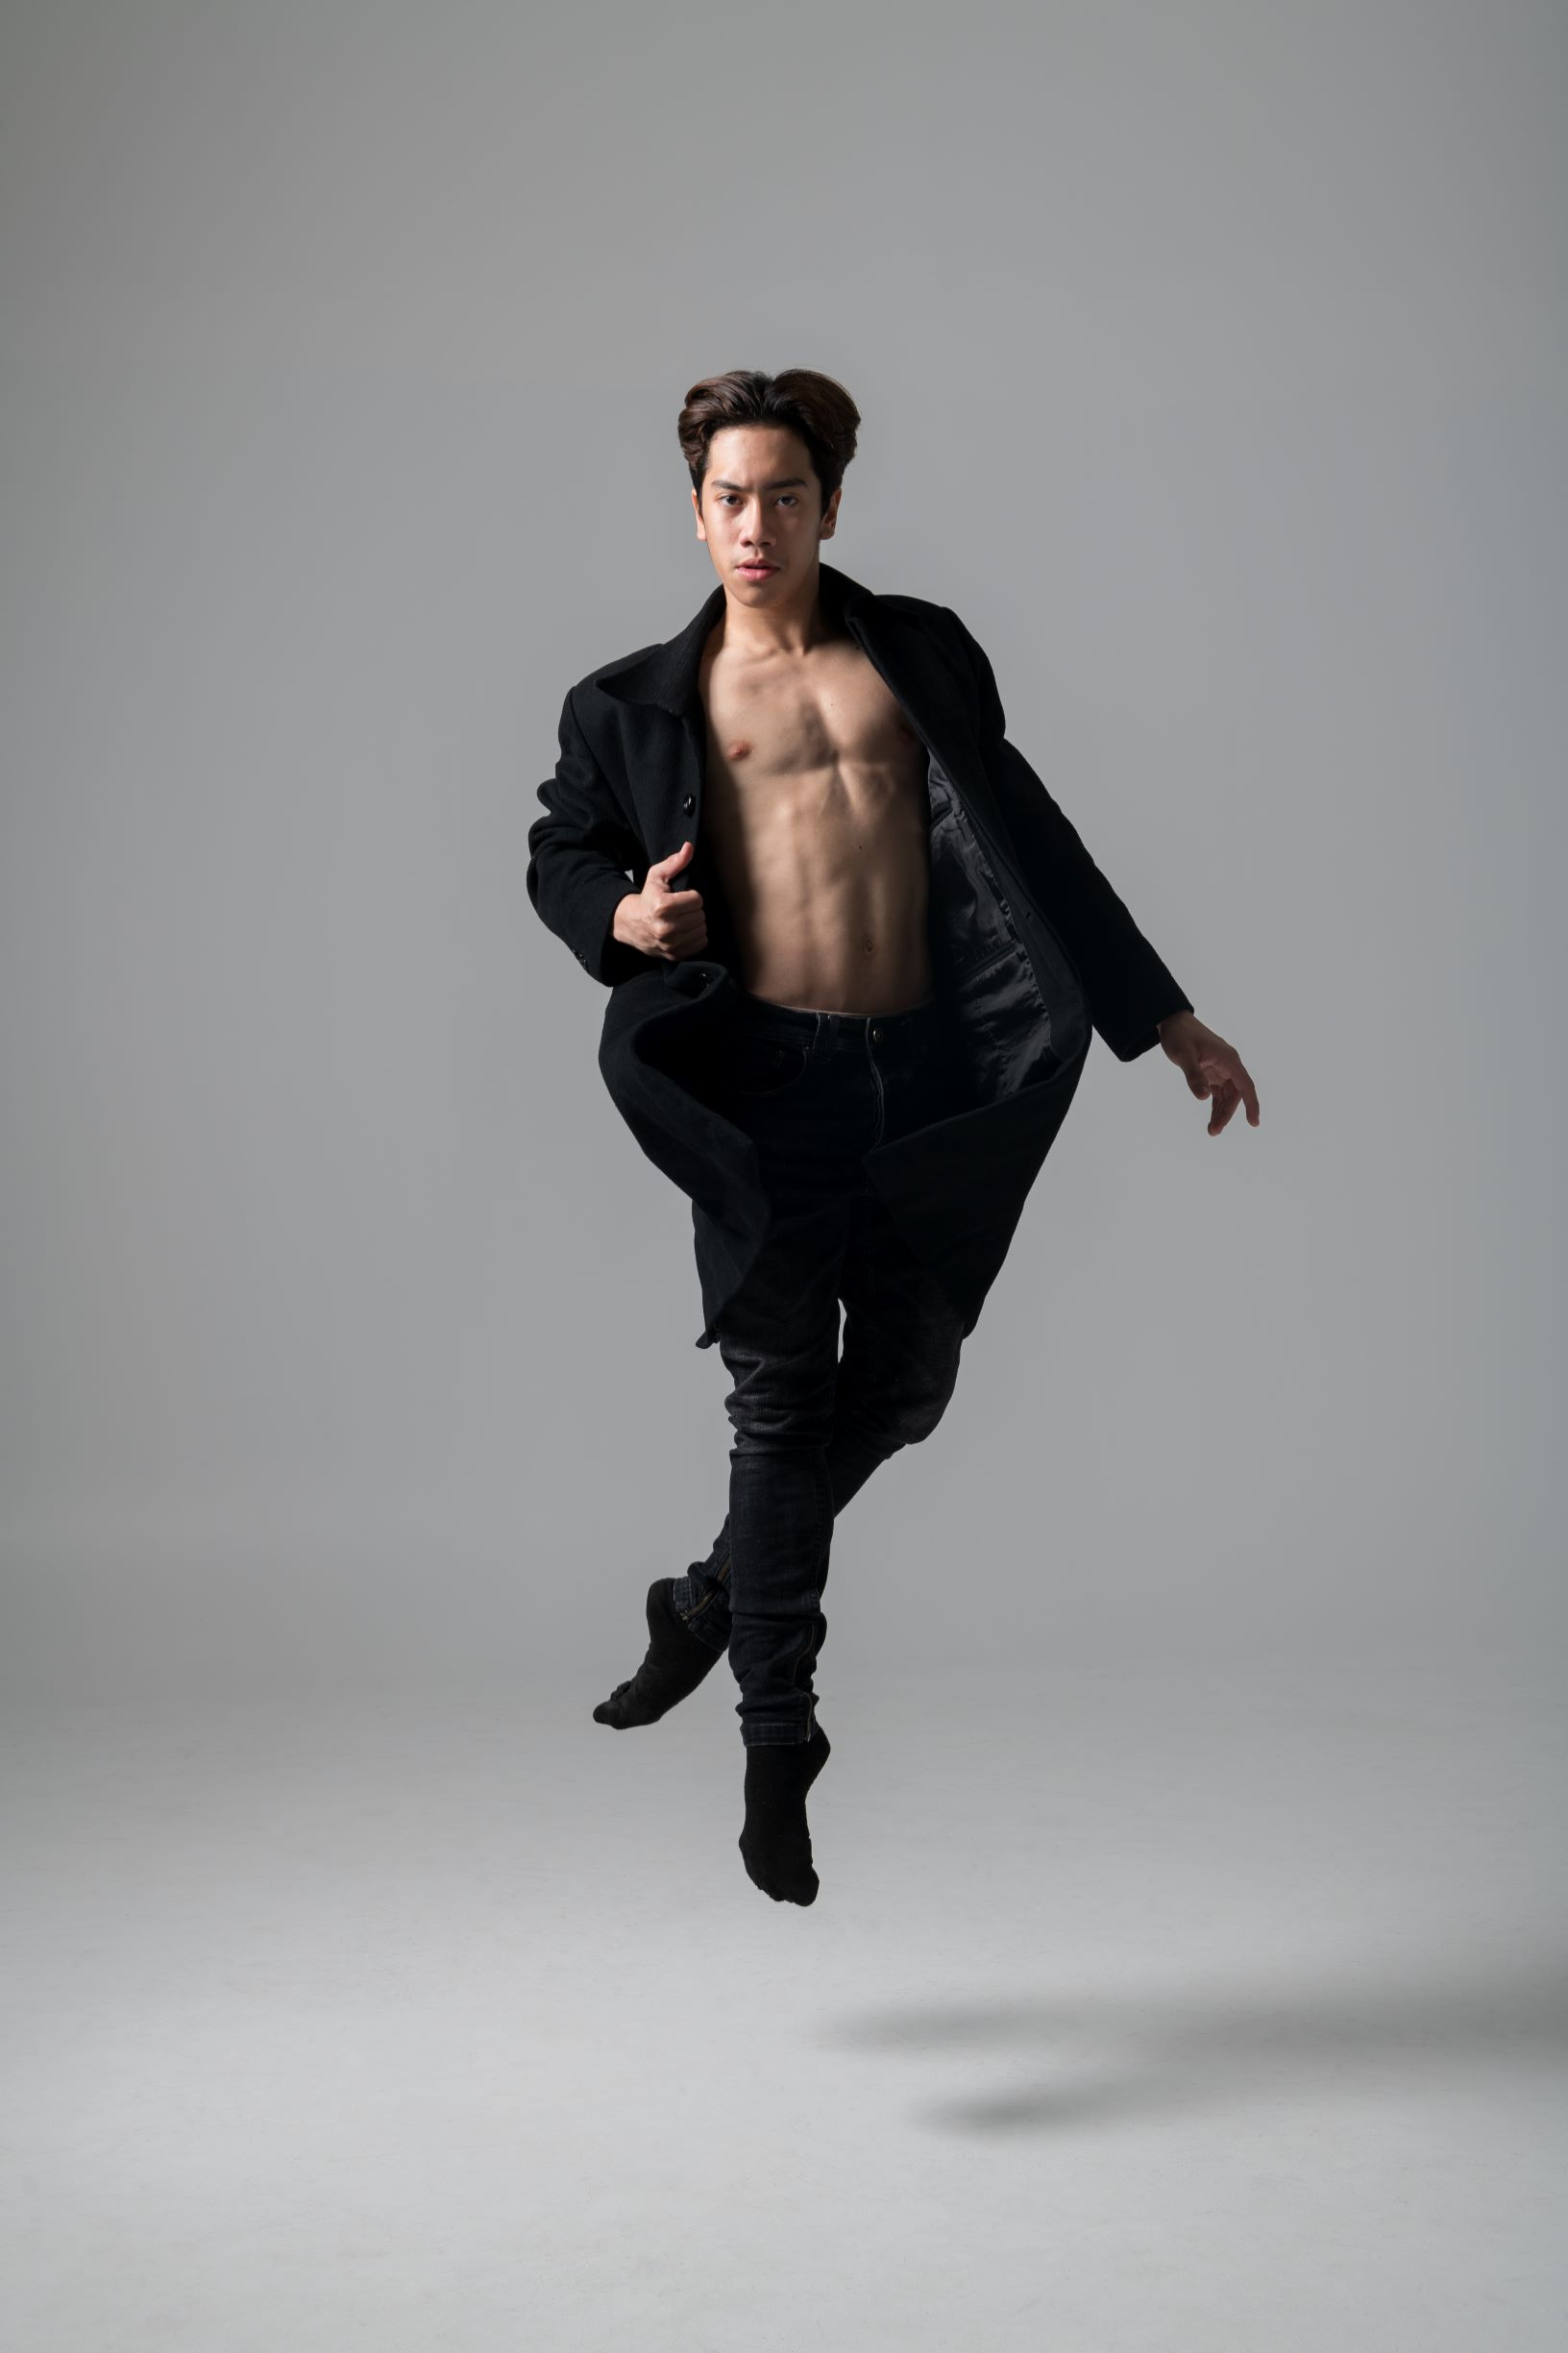 NZSD 2019 classical ballet student Rench Soriano